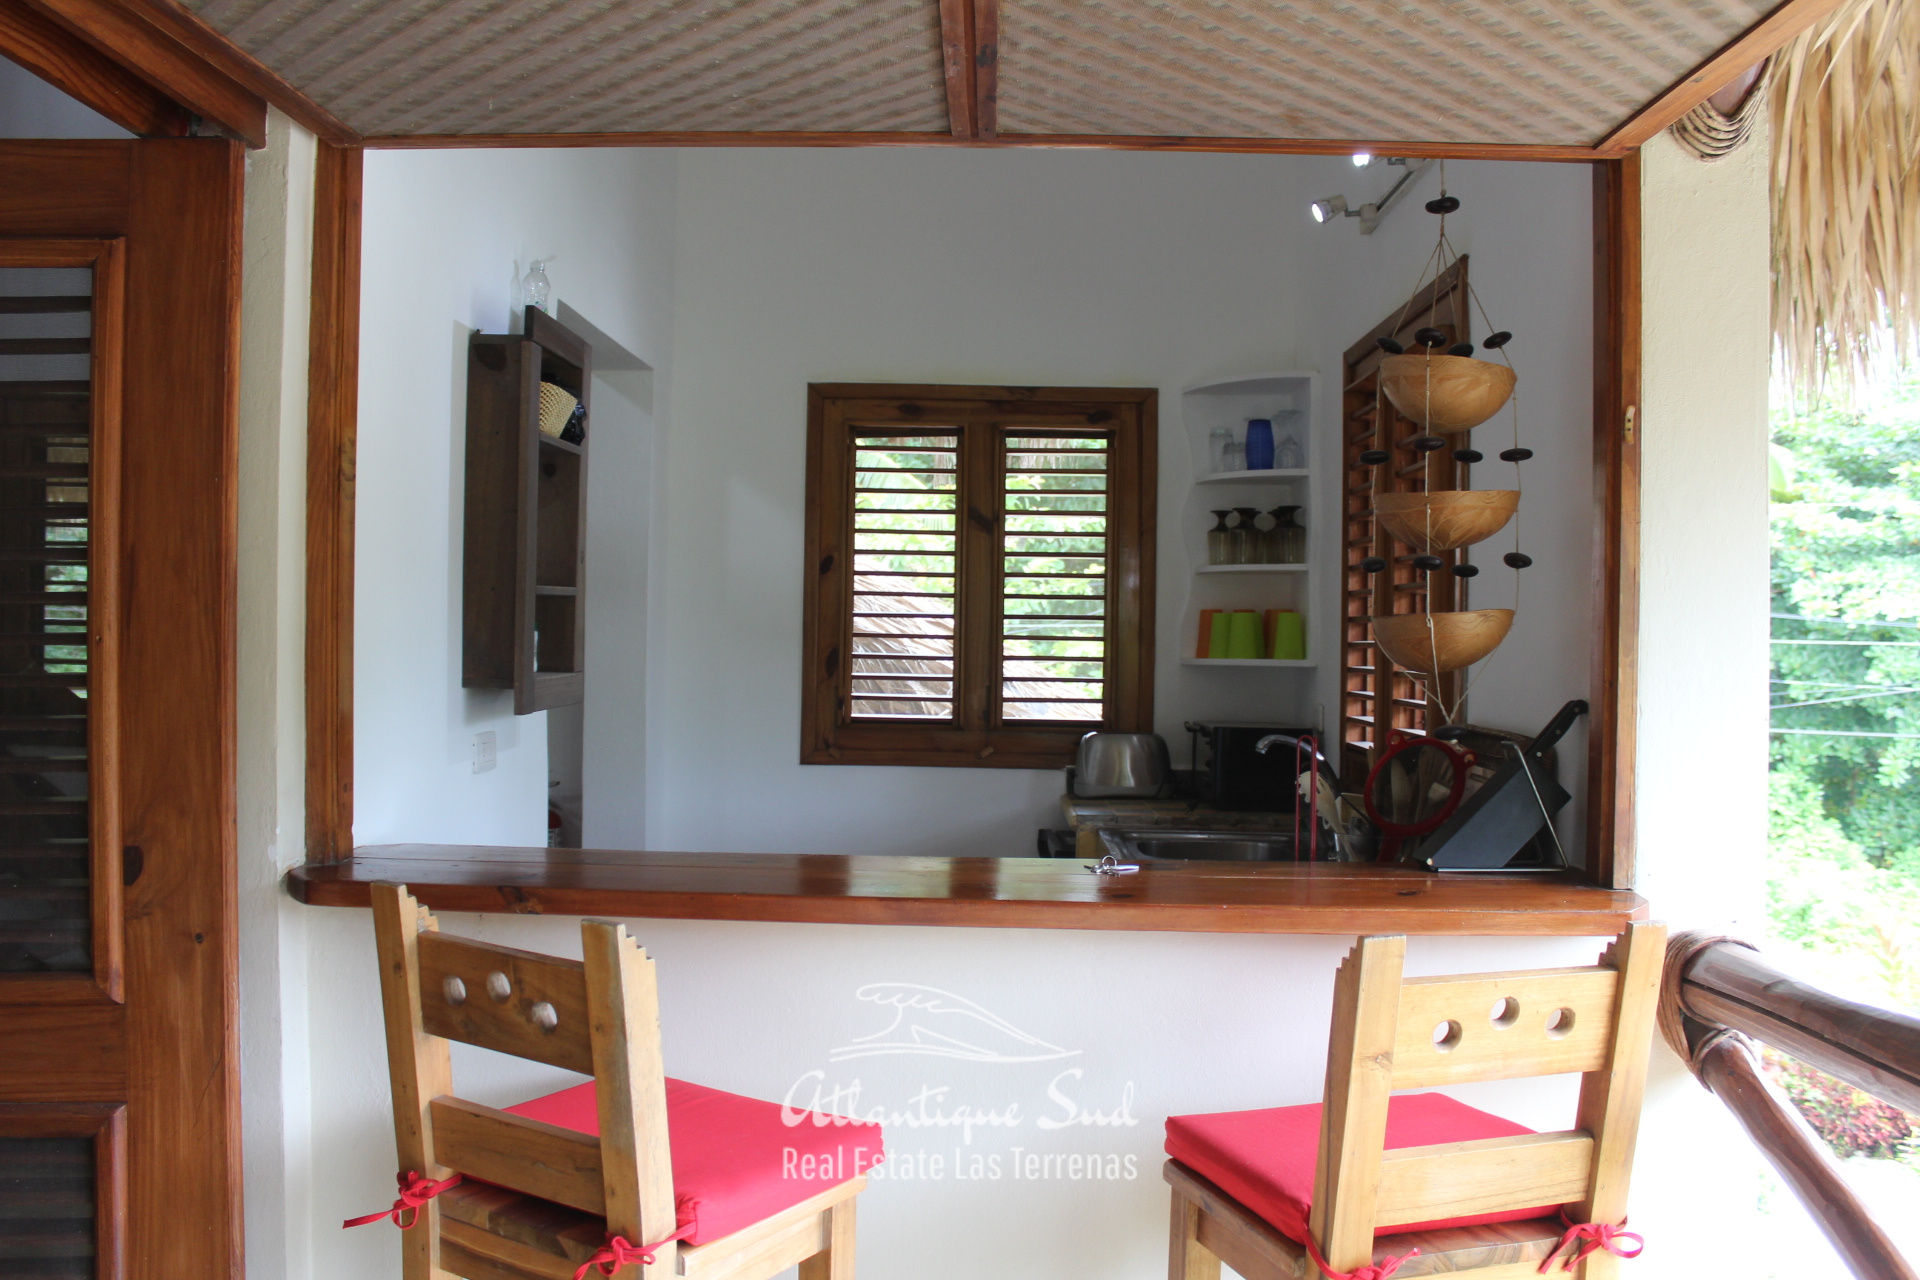 For-sale-Apartment-in-beachfront-community-with-mezzanine-Las-Terrenas_4788 (1).JPG